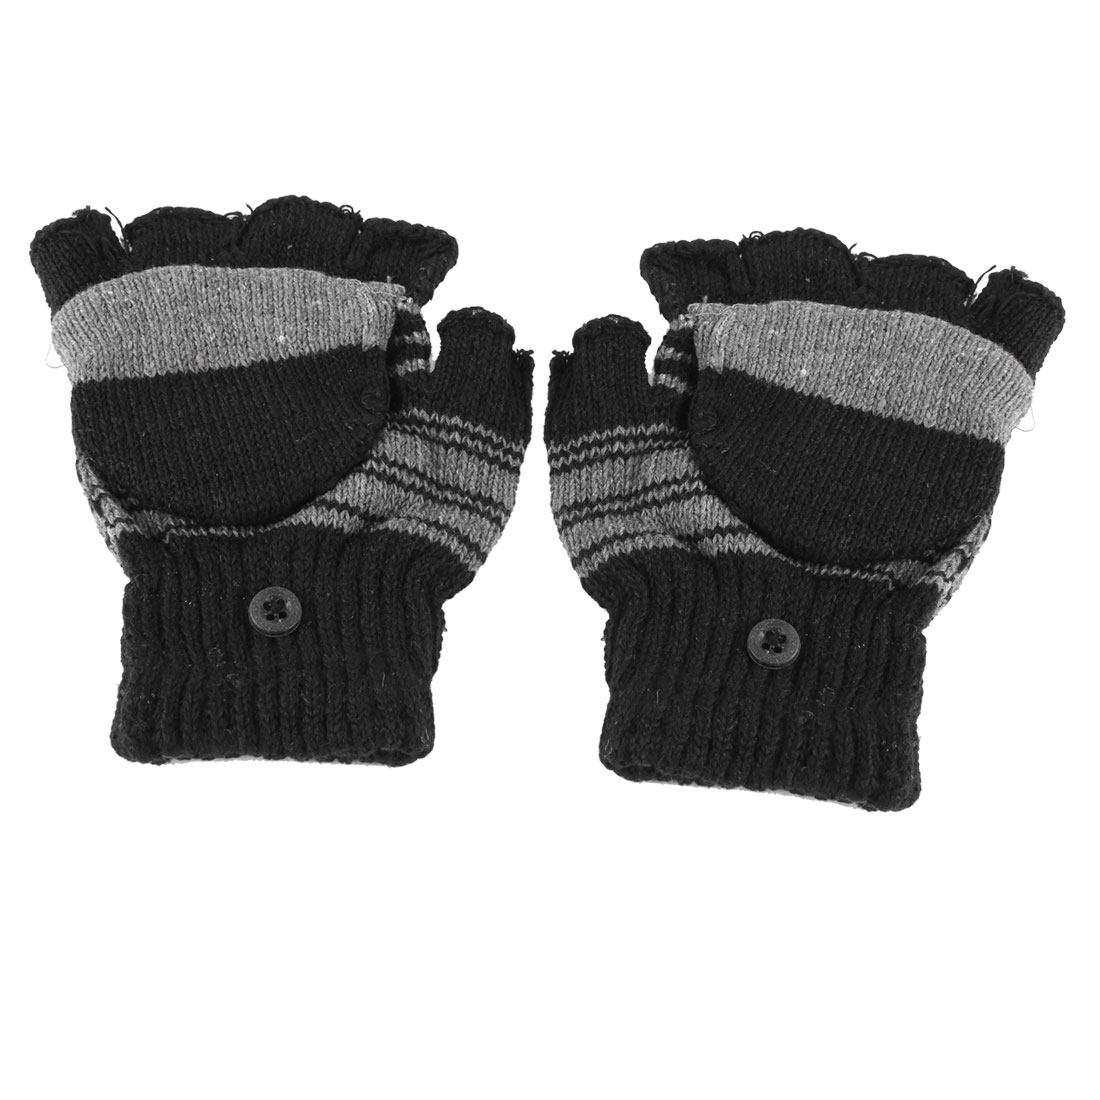 Boys Pair Hand Knitting Convertible Mitten Cover Fingerless Gloves Black